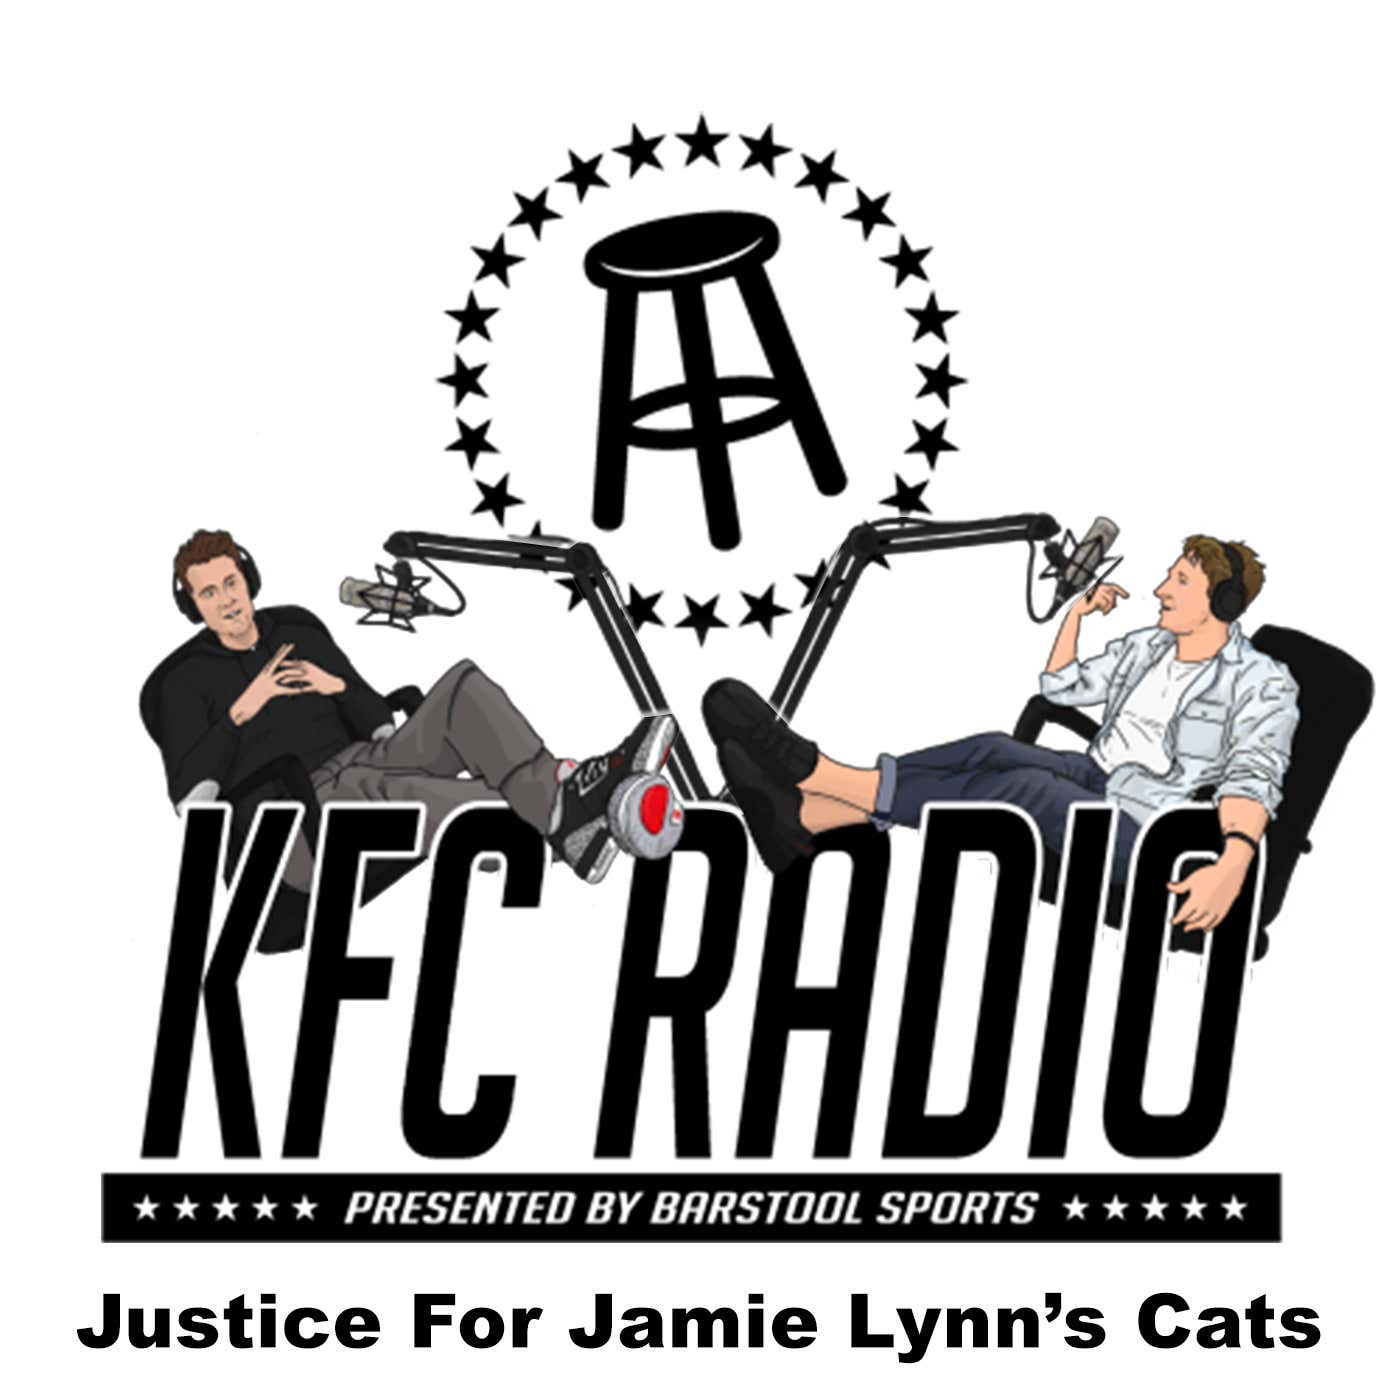 Justice For Jamie Lynn's Cats